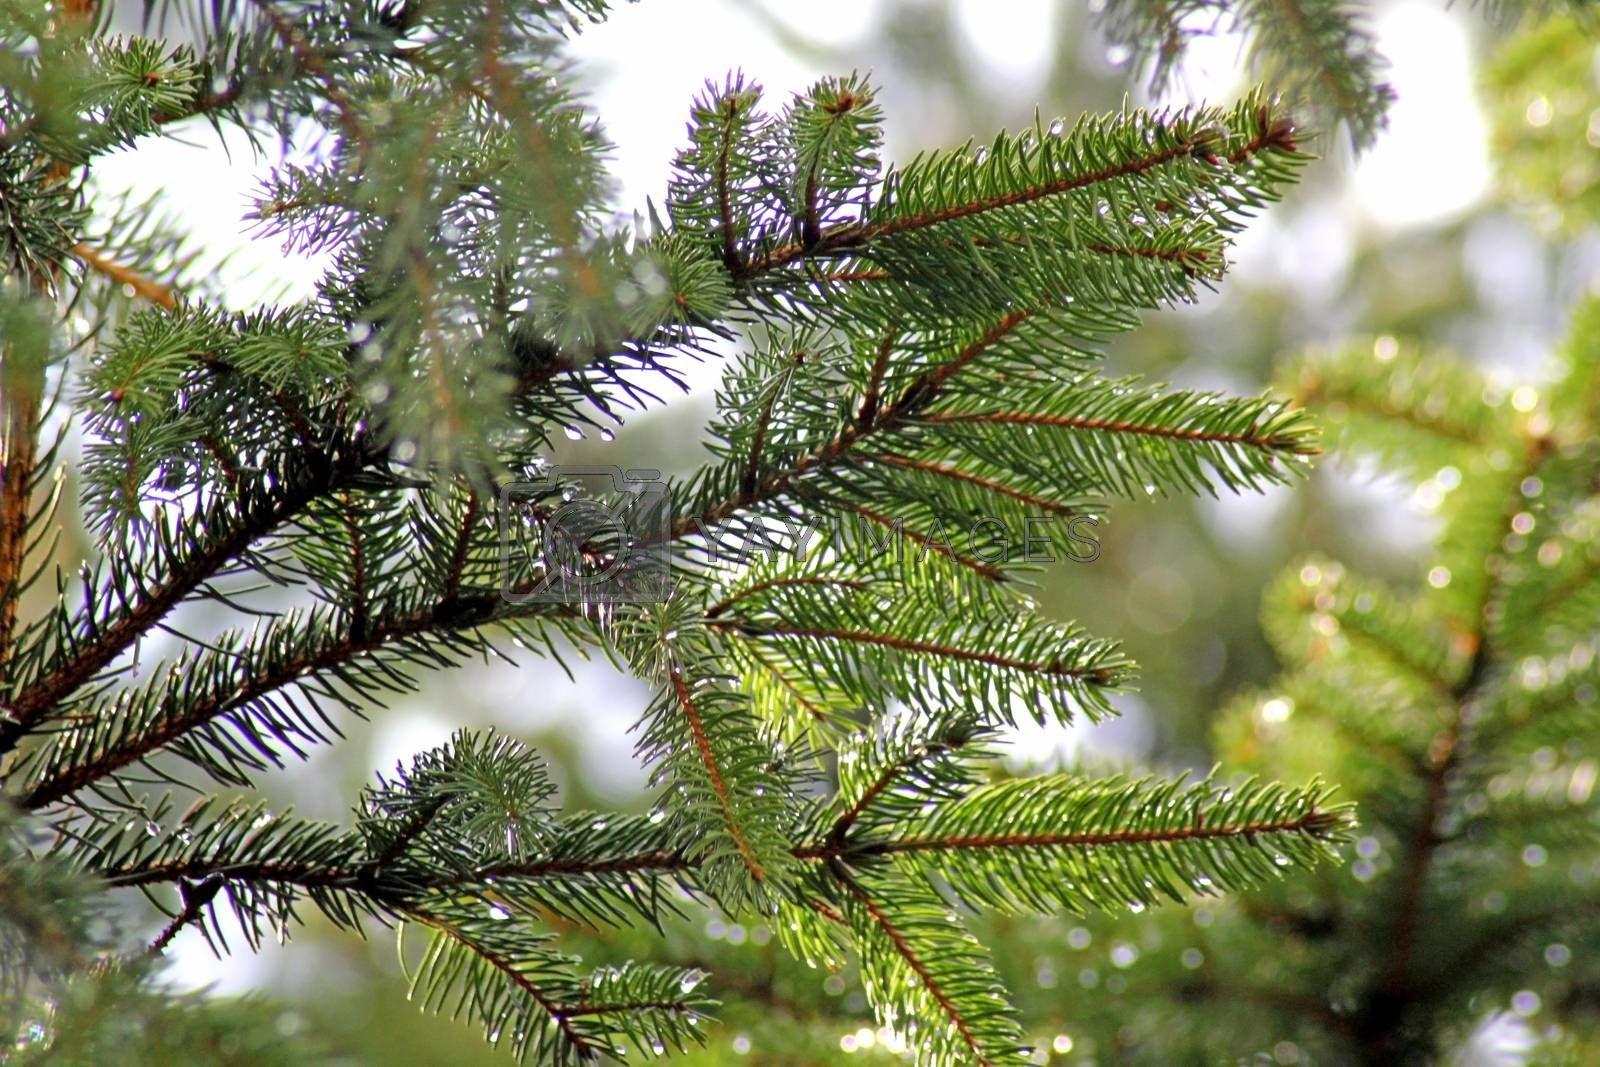 branches of spruce, covered with rain drops. Photographed close-up.